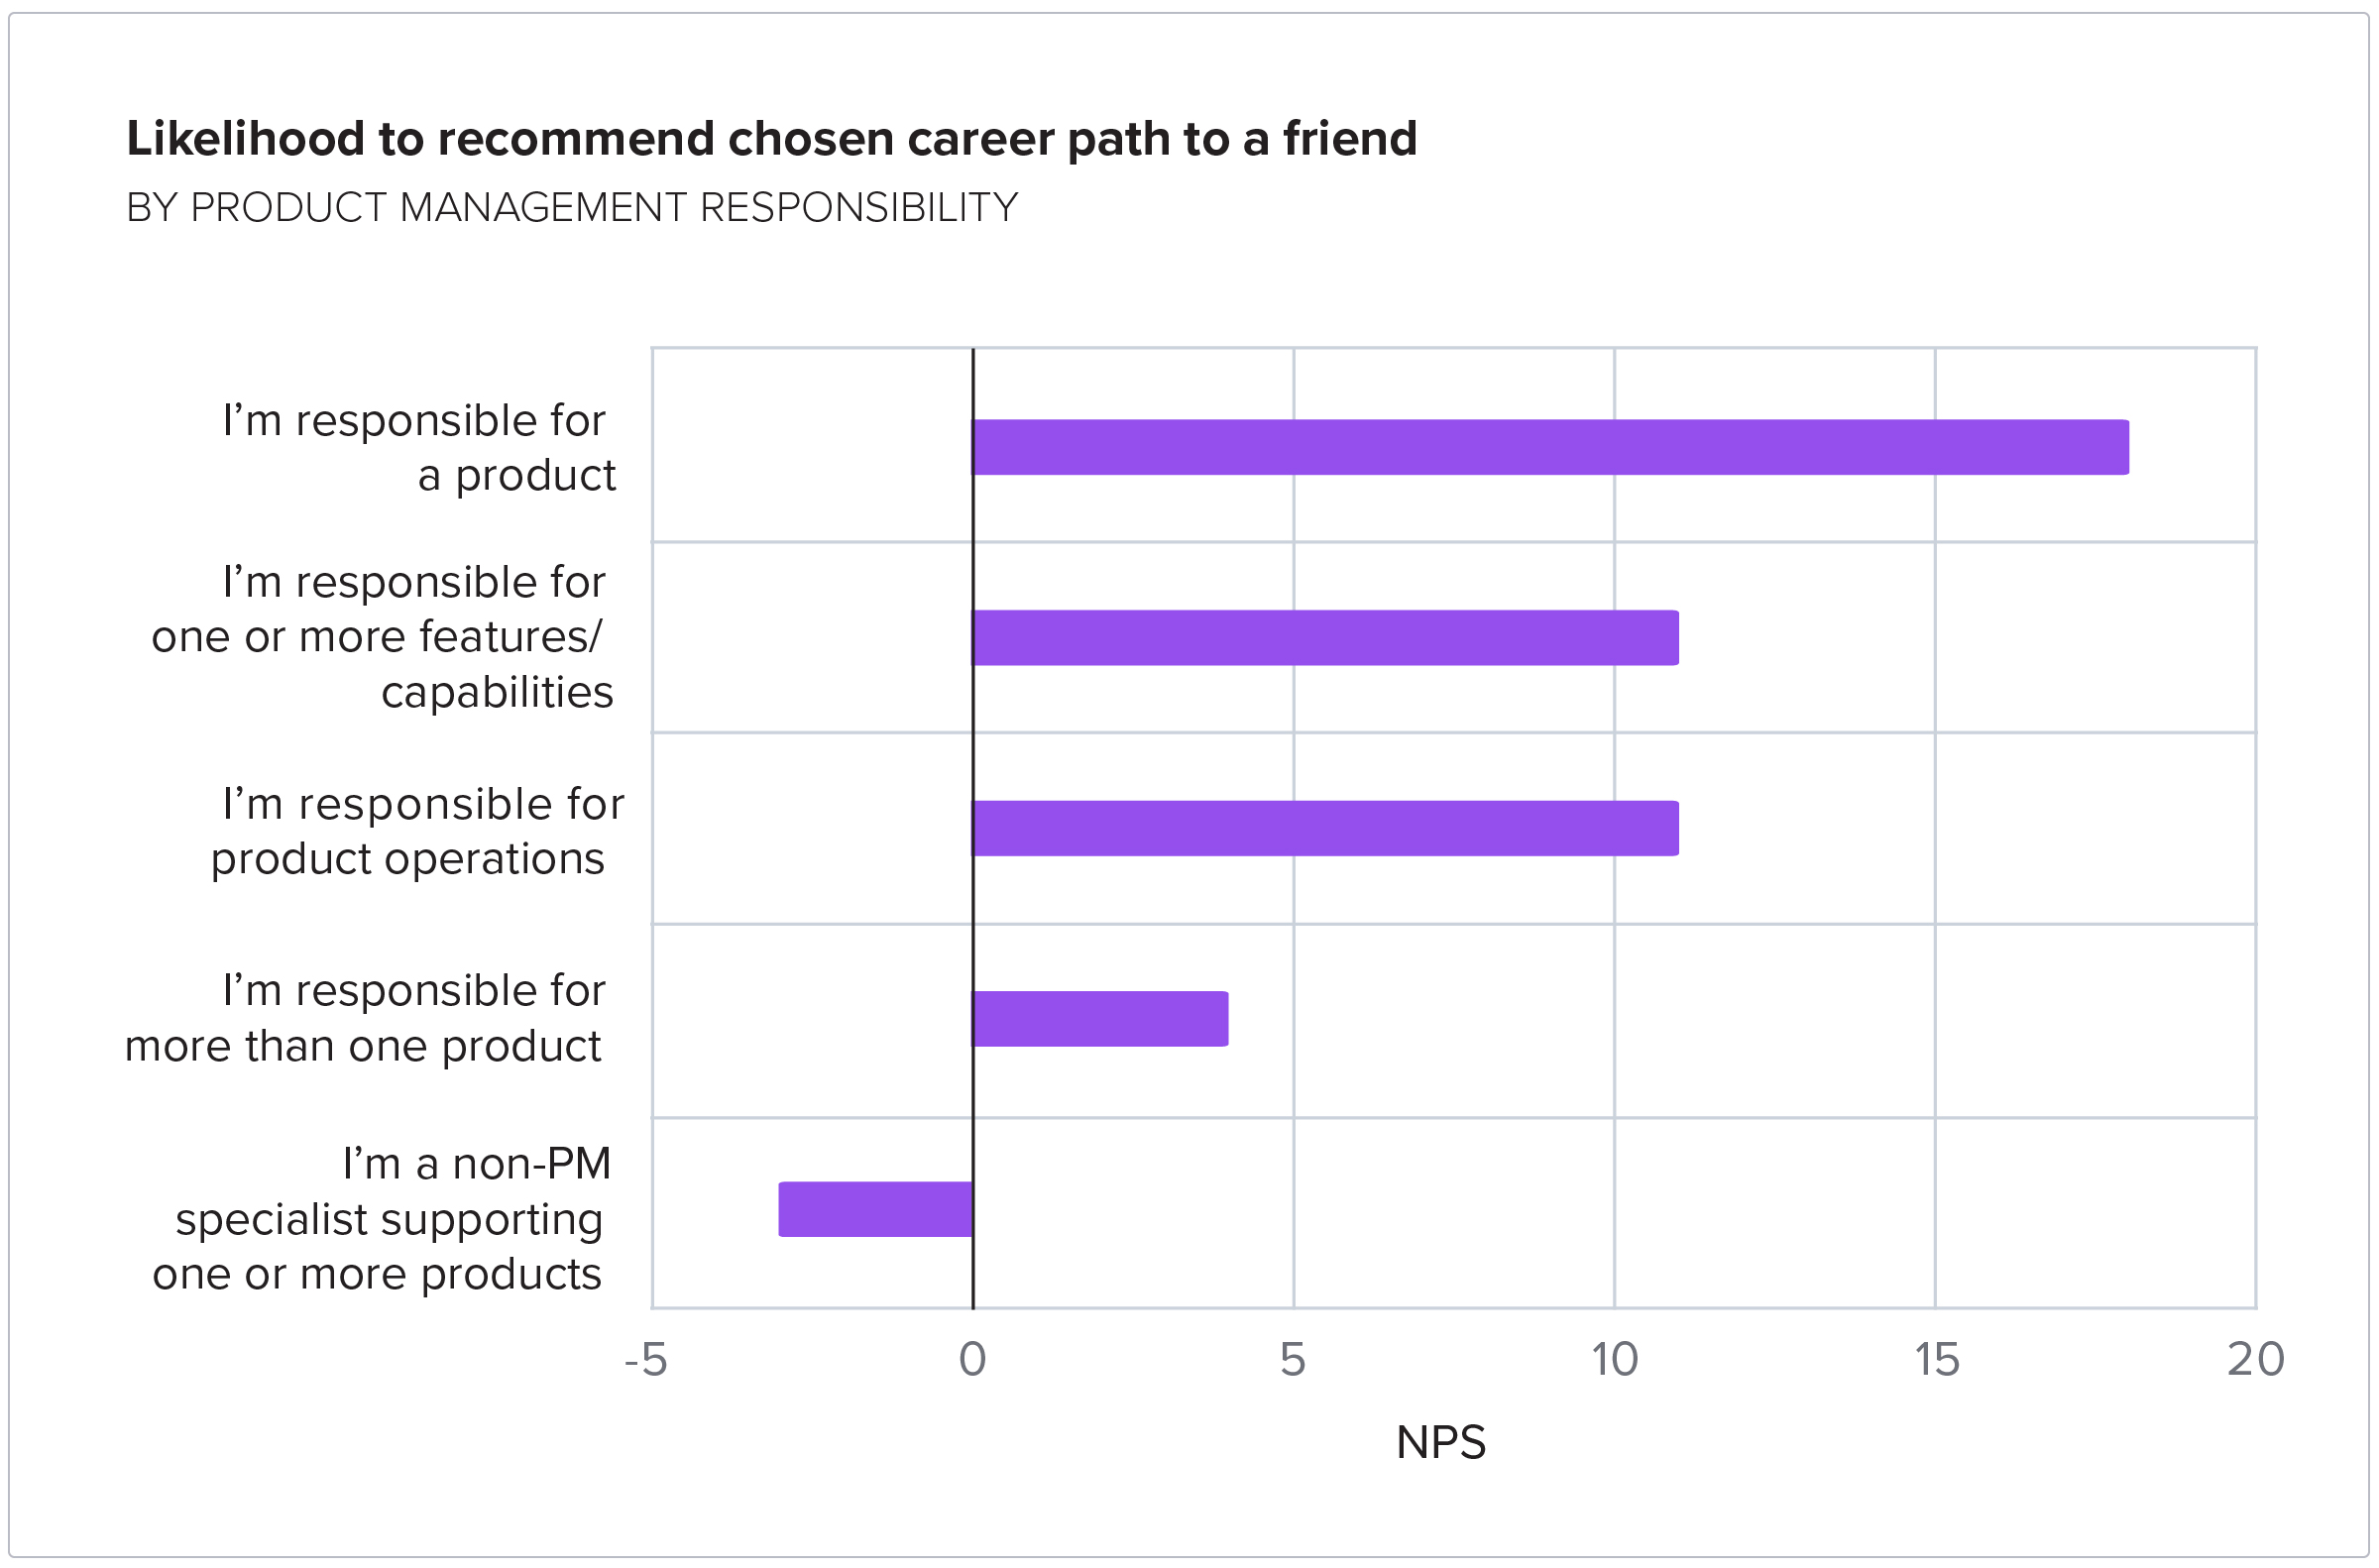 Likelihood to recommend chosen career path to a friend by product management responsibility